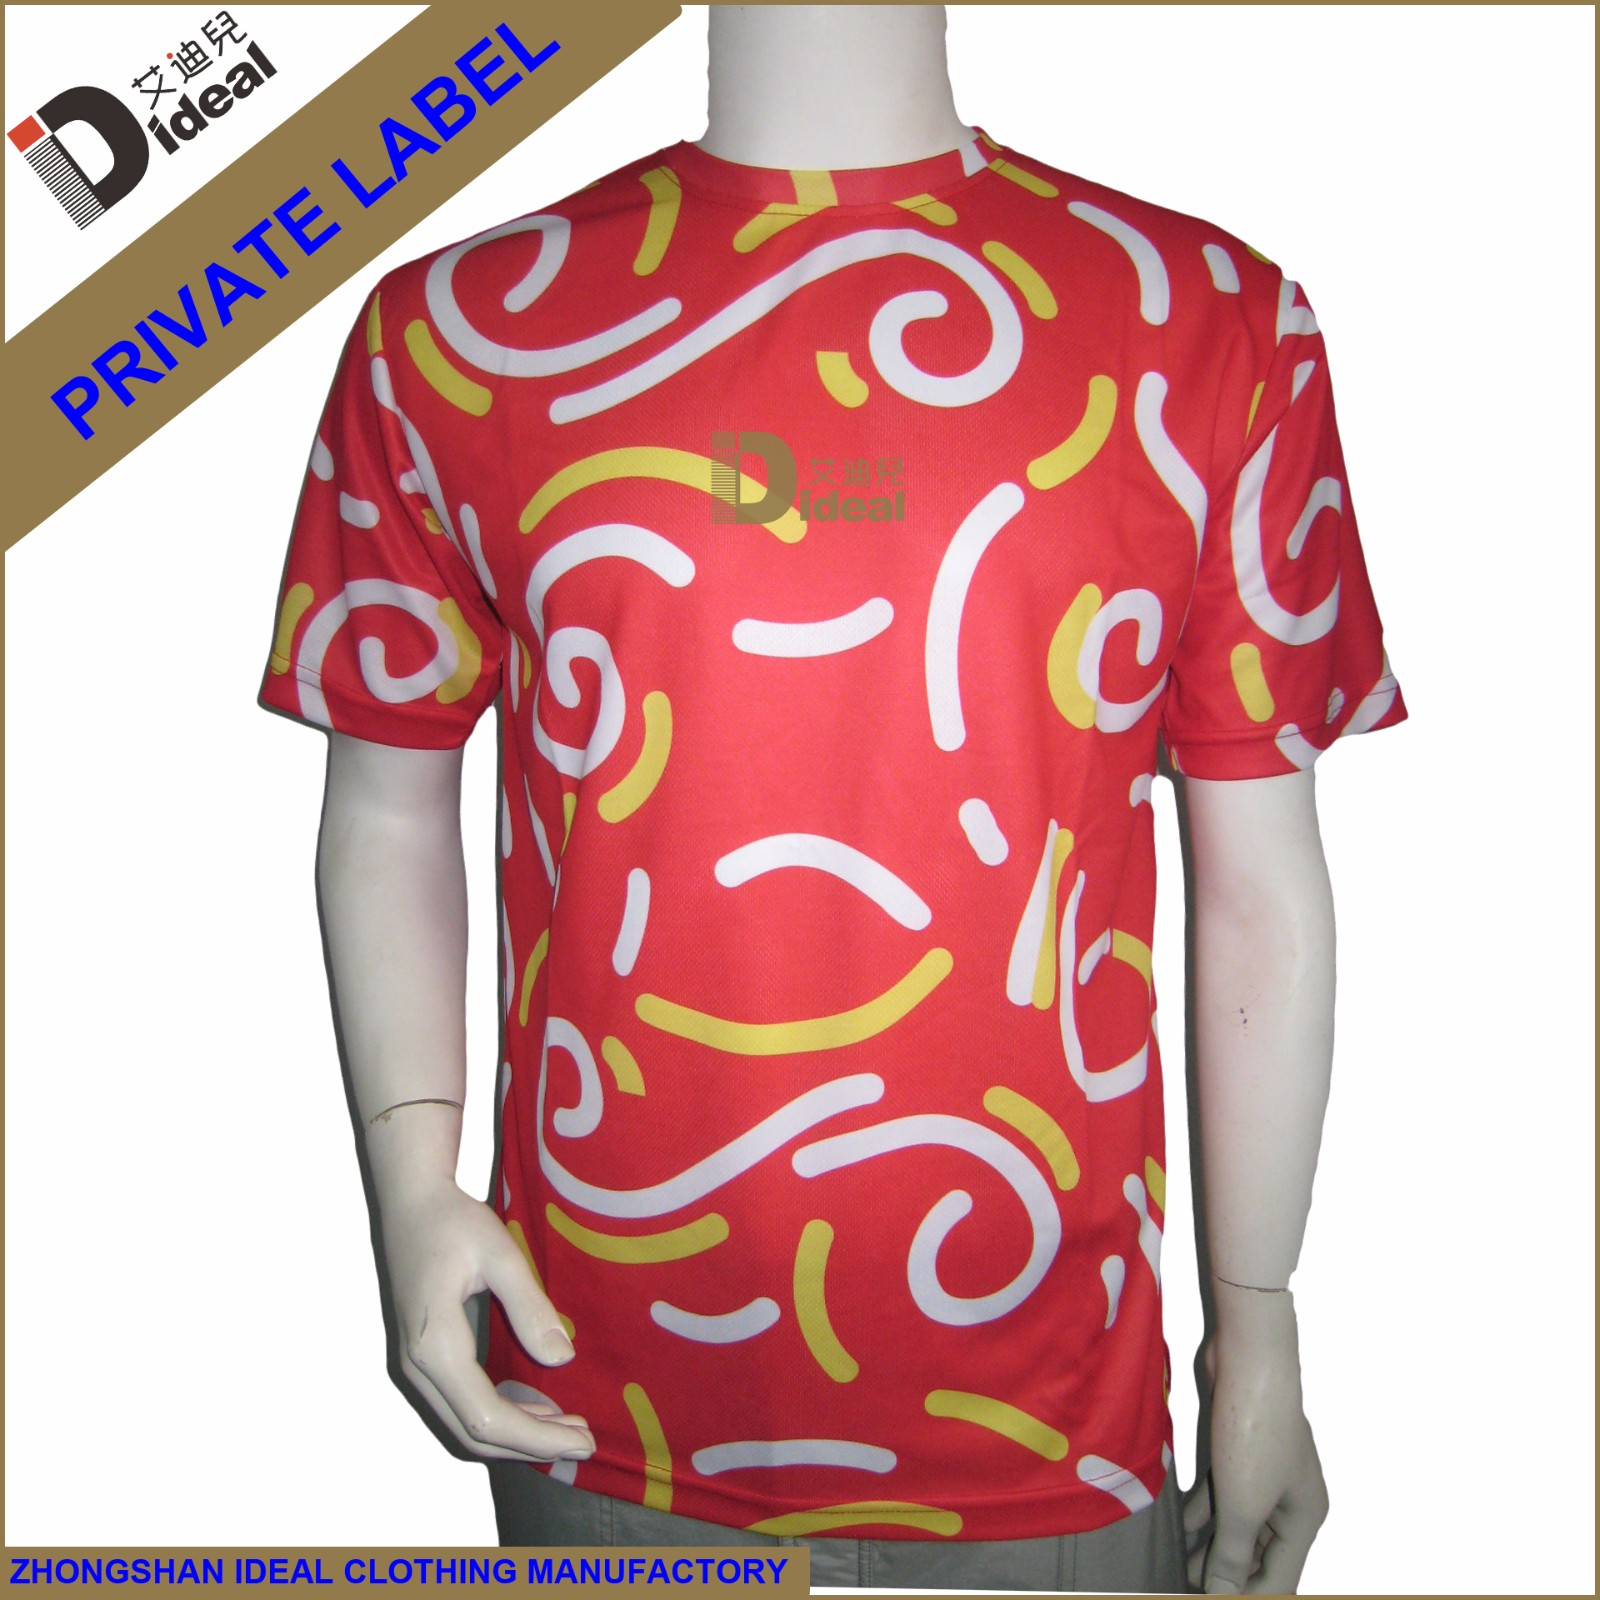 High quality Promtoional Polyester T-shirt Quotes,China Promtoional Polyester T-shirt Factory,Promtoional Polyester T-shirt Purchasing